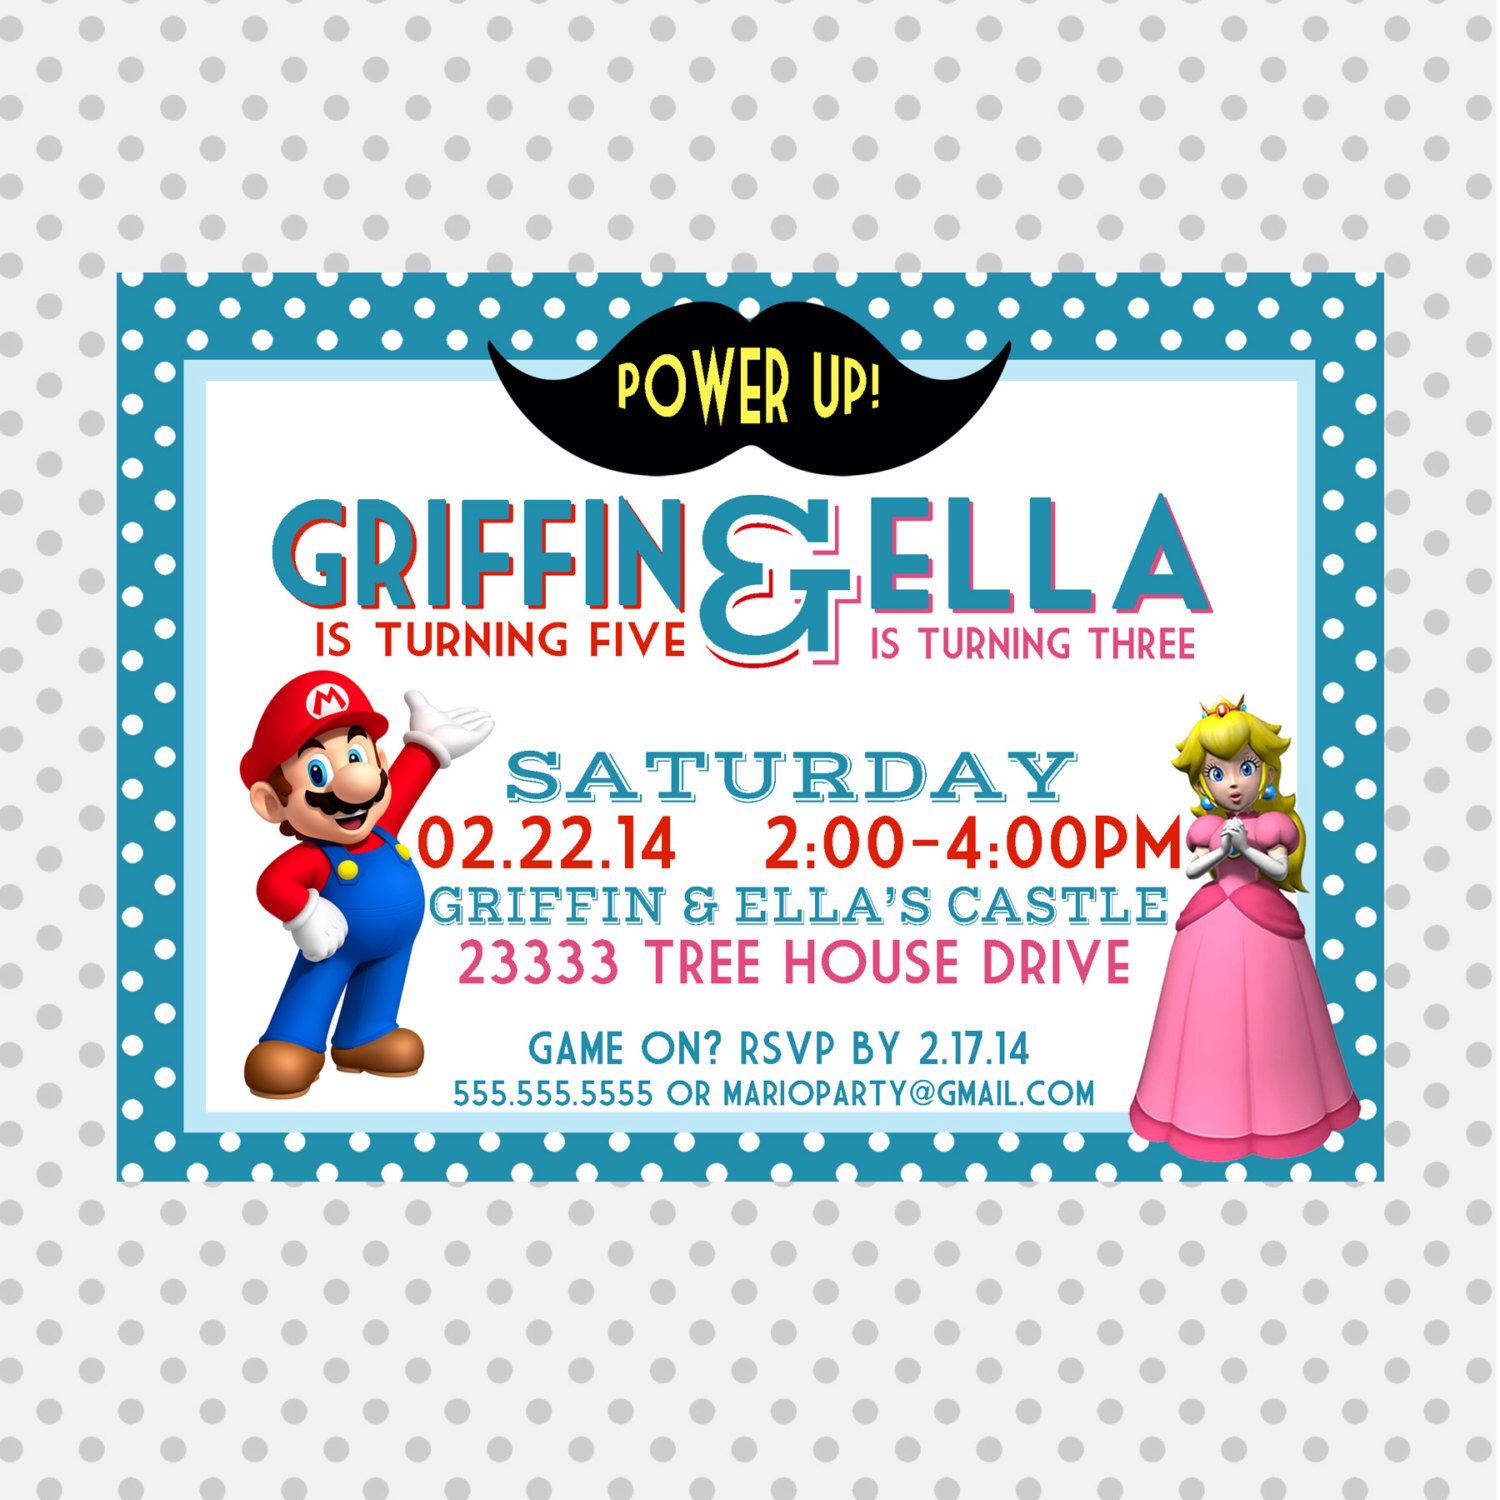 Mario princess peach birthday party invite joint mario party mario princess peach birthday party invite joint mario party princess peach mario monicamarmolfo Gallery